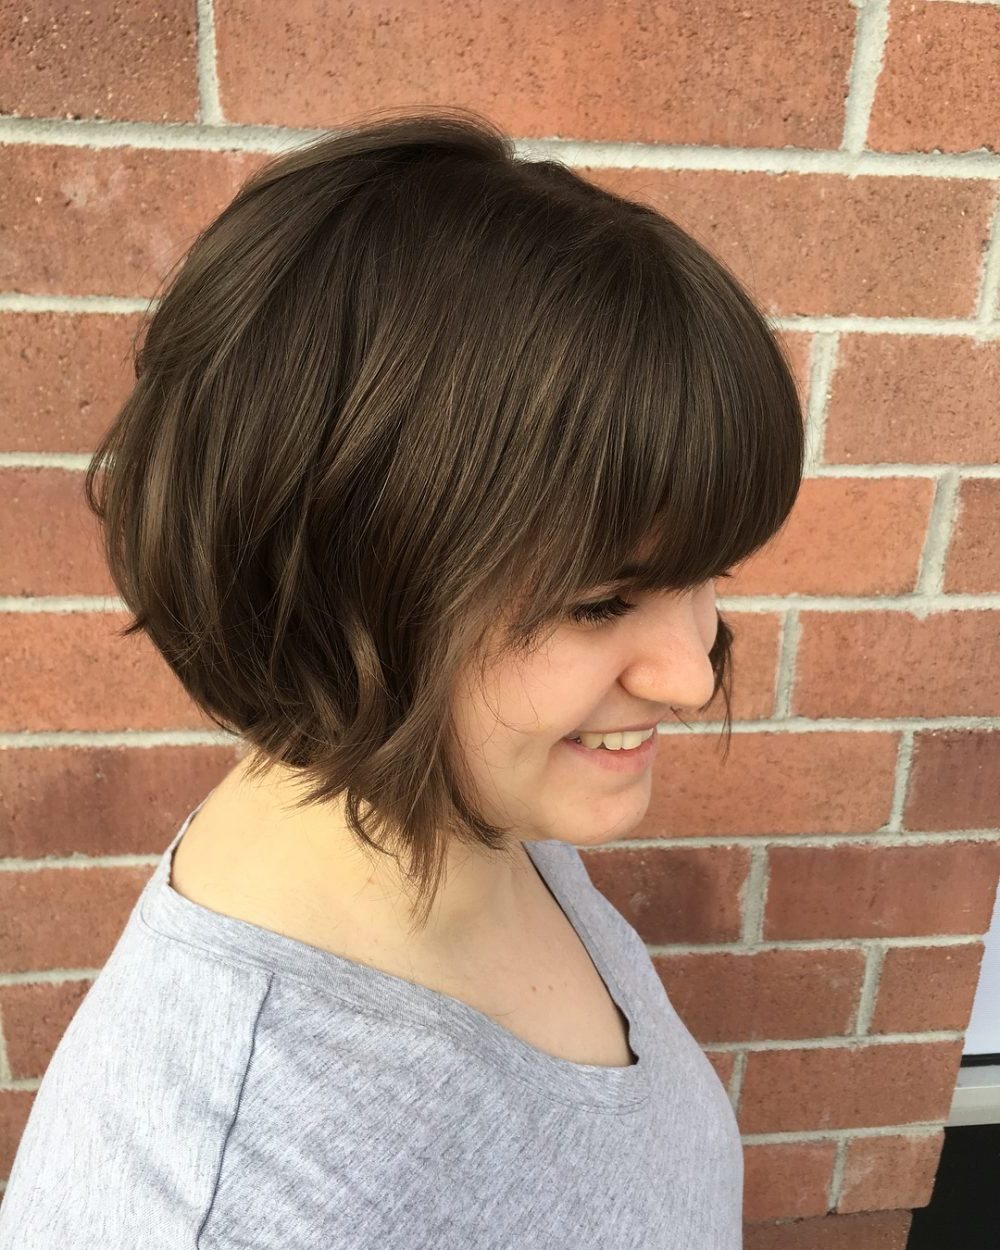 34 Greatest Short Haircuts And Hairstyles For Thick Hair For 2018 Intended For Short Hairstyles For Thick Hair (View 13 of 25)